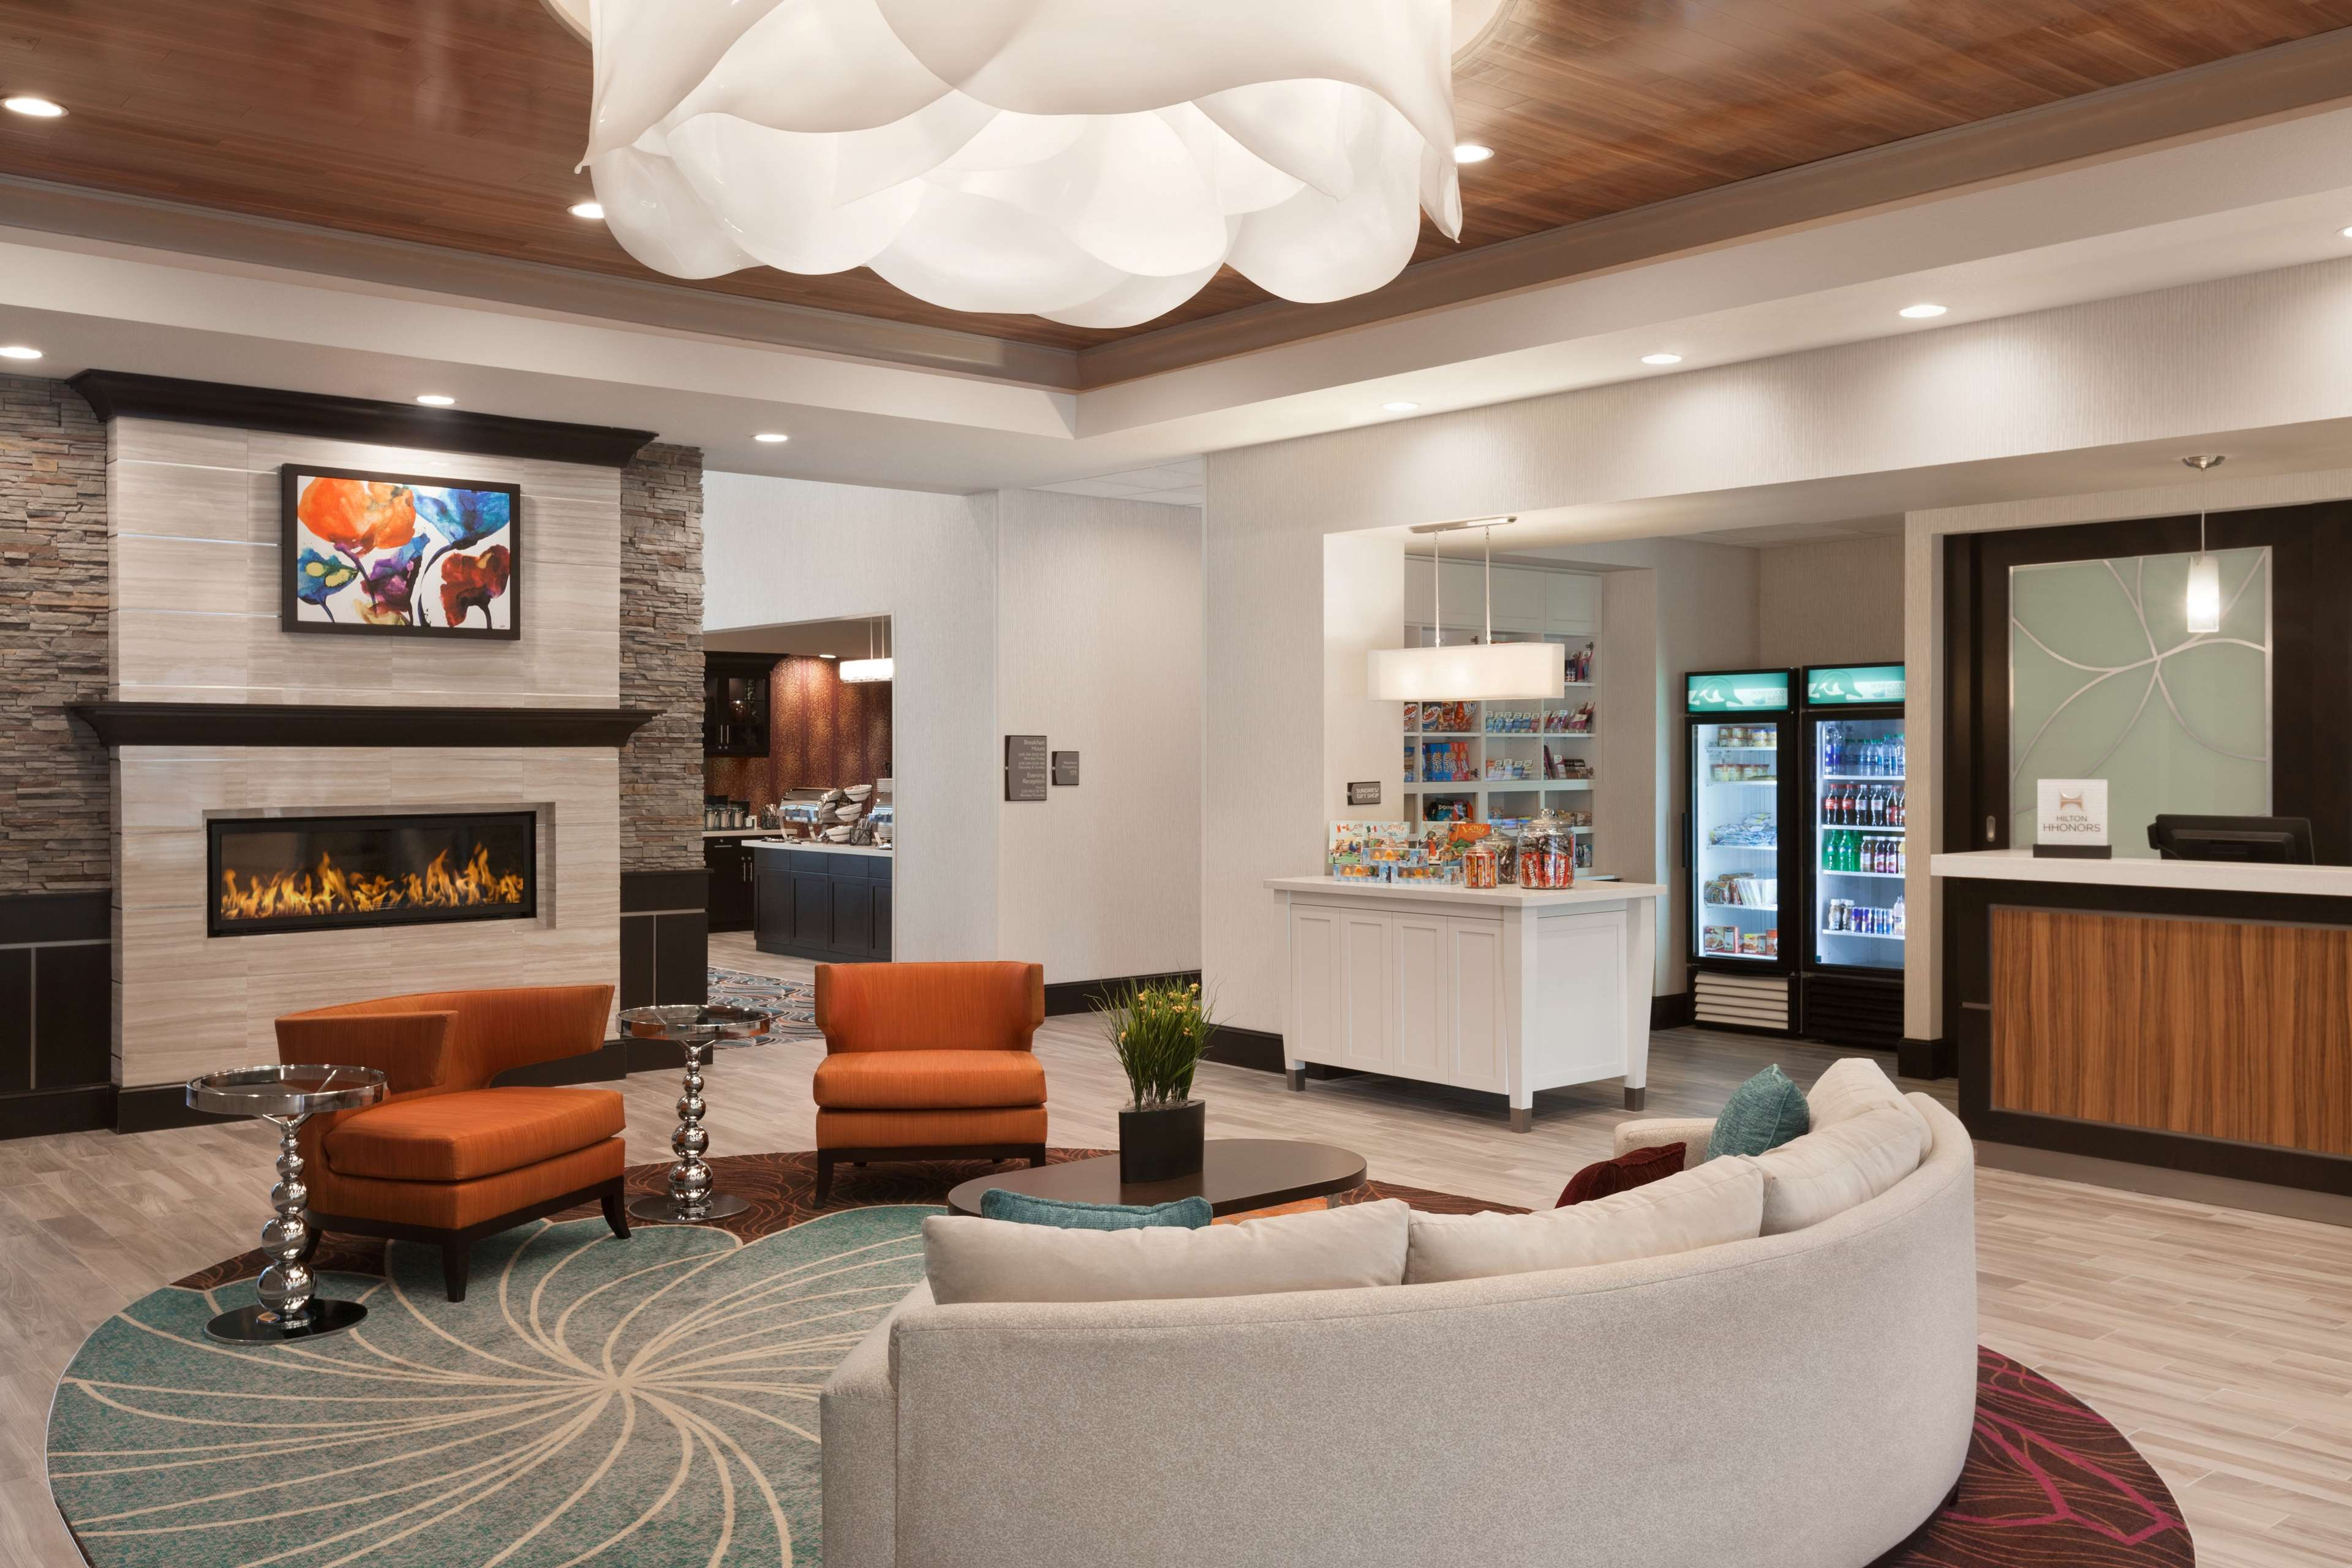 Homewood Suites by Hilton North Houston/Spring image 5